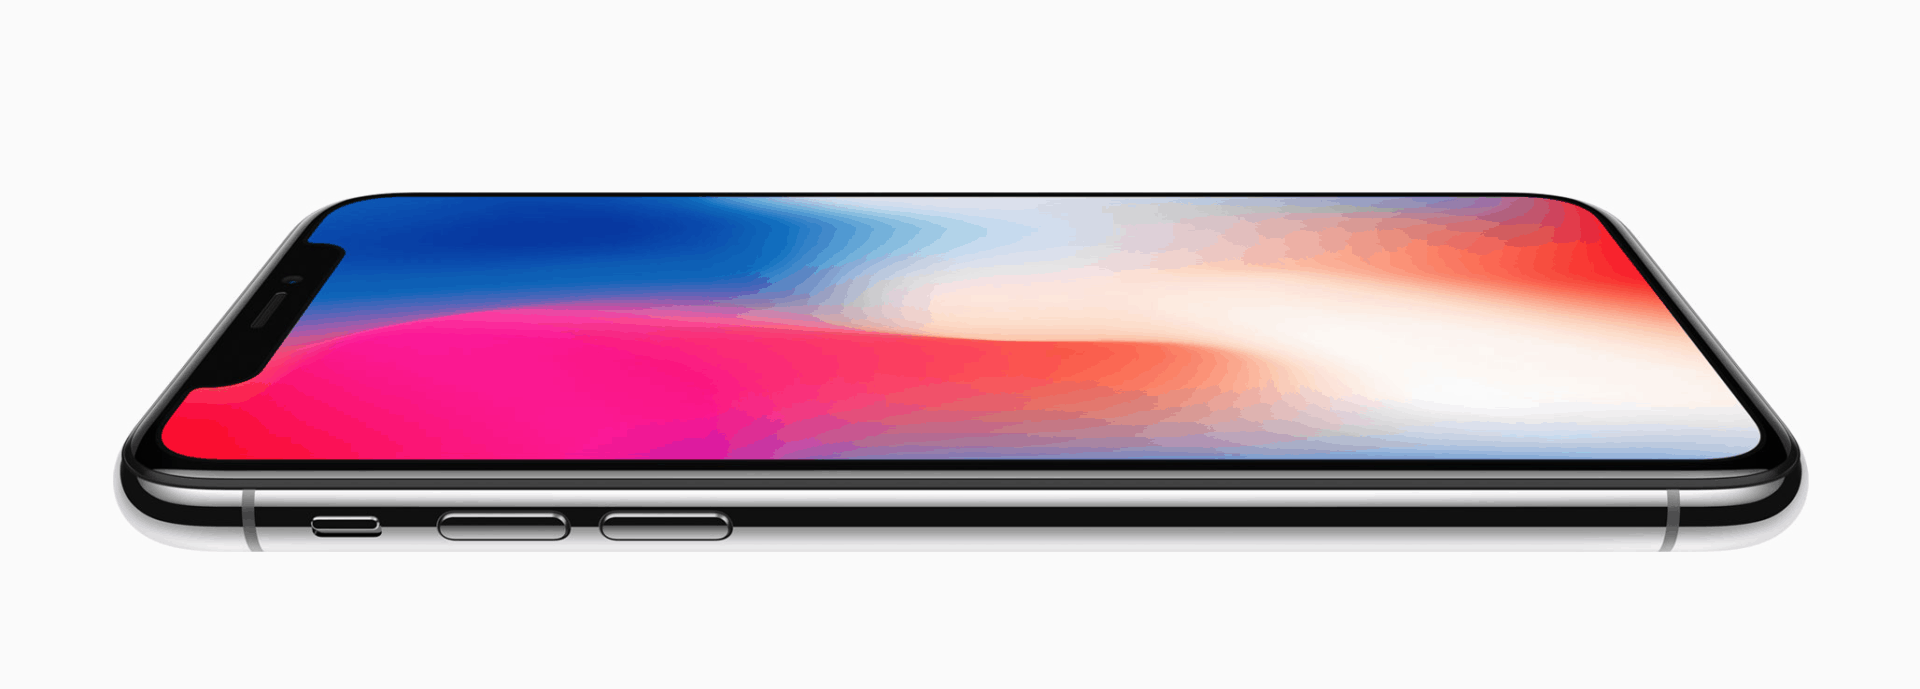 Apple iPhone X: nový design, technologie a cena